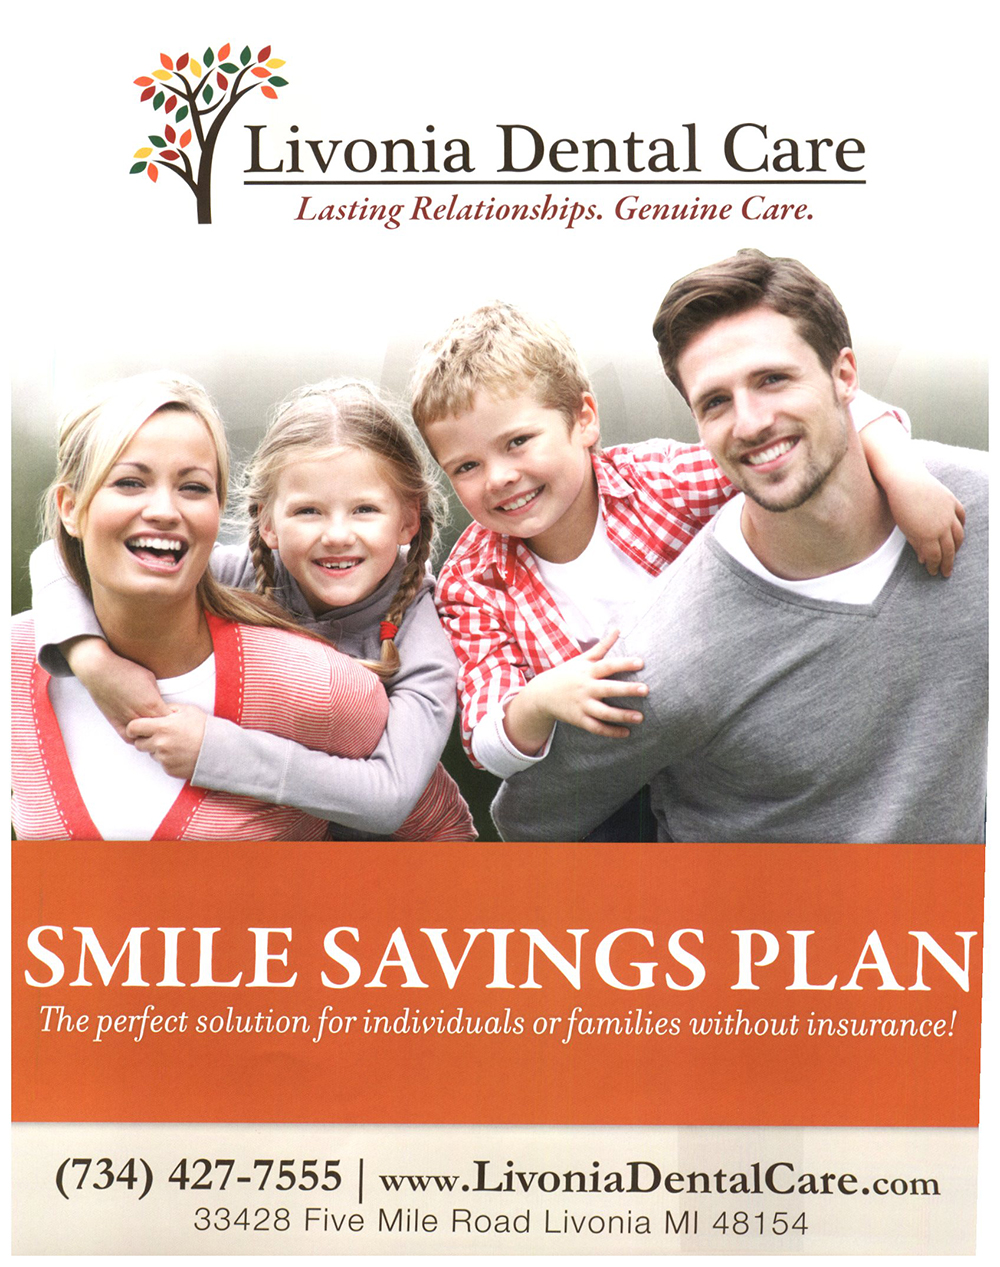 Smile Savings Plan0